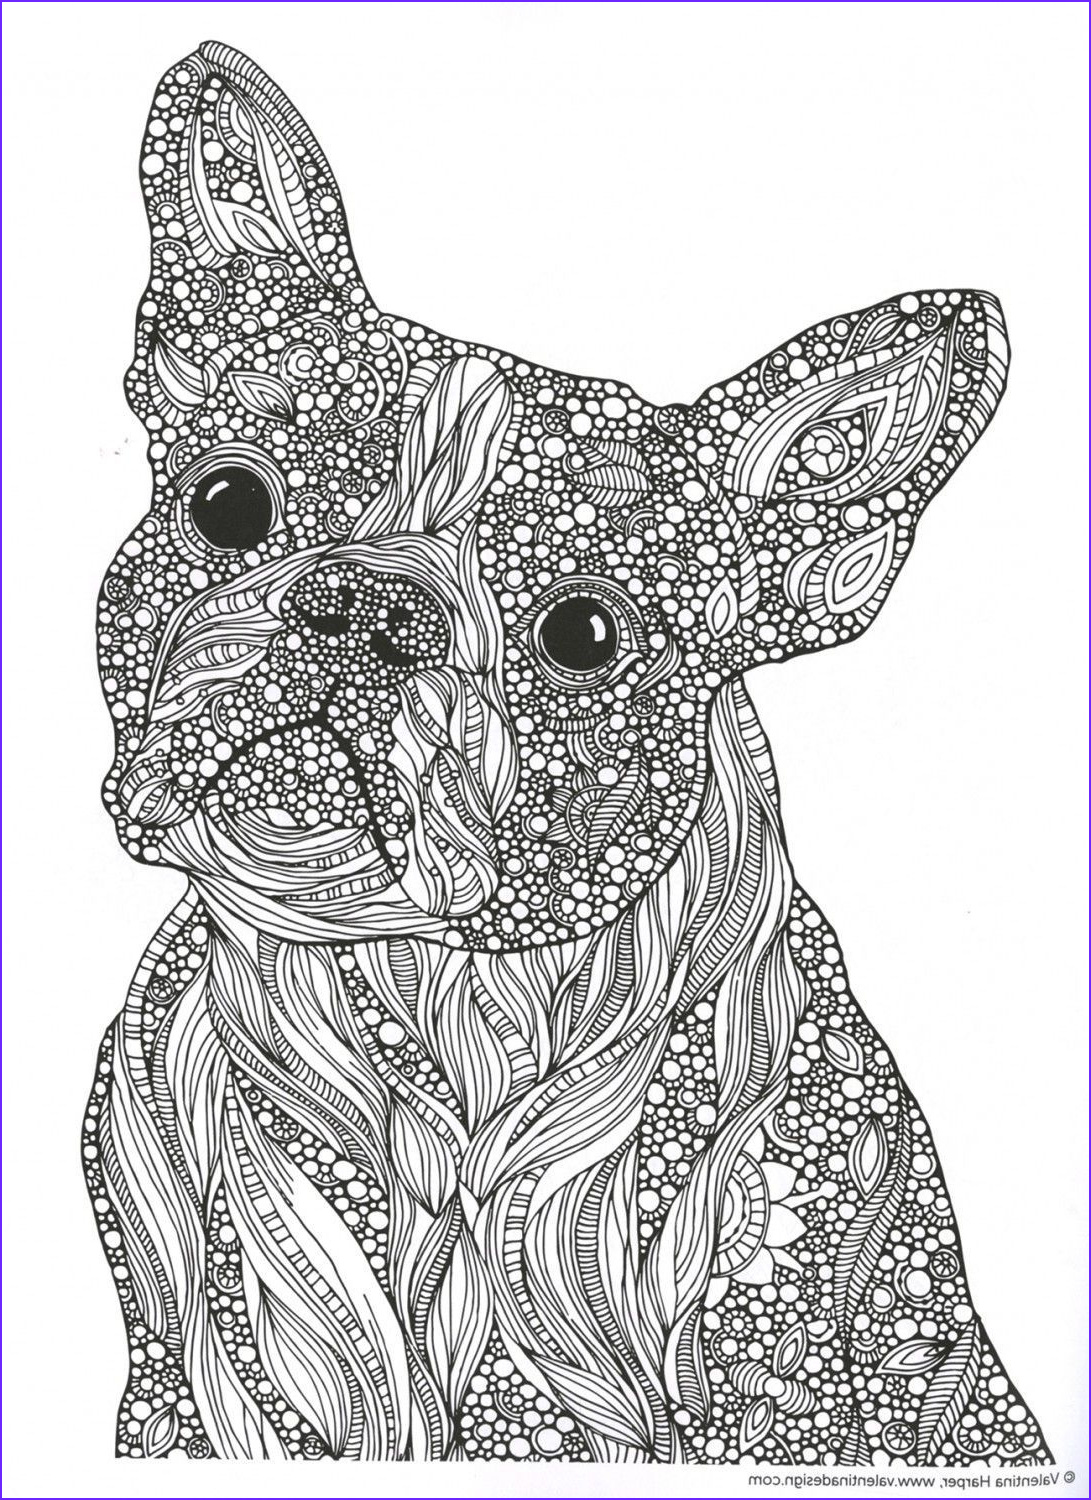 Dog Adult Coloring Book New Images Creative Coloring Animals Adult Coloring and Activity Book